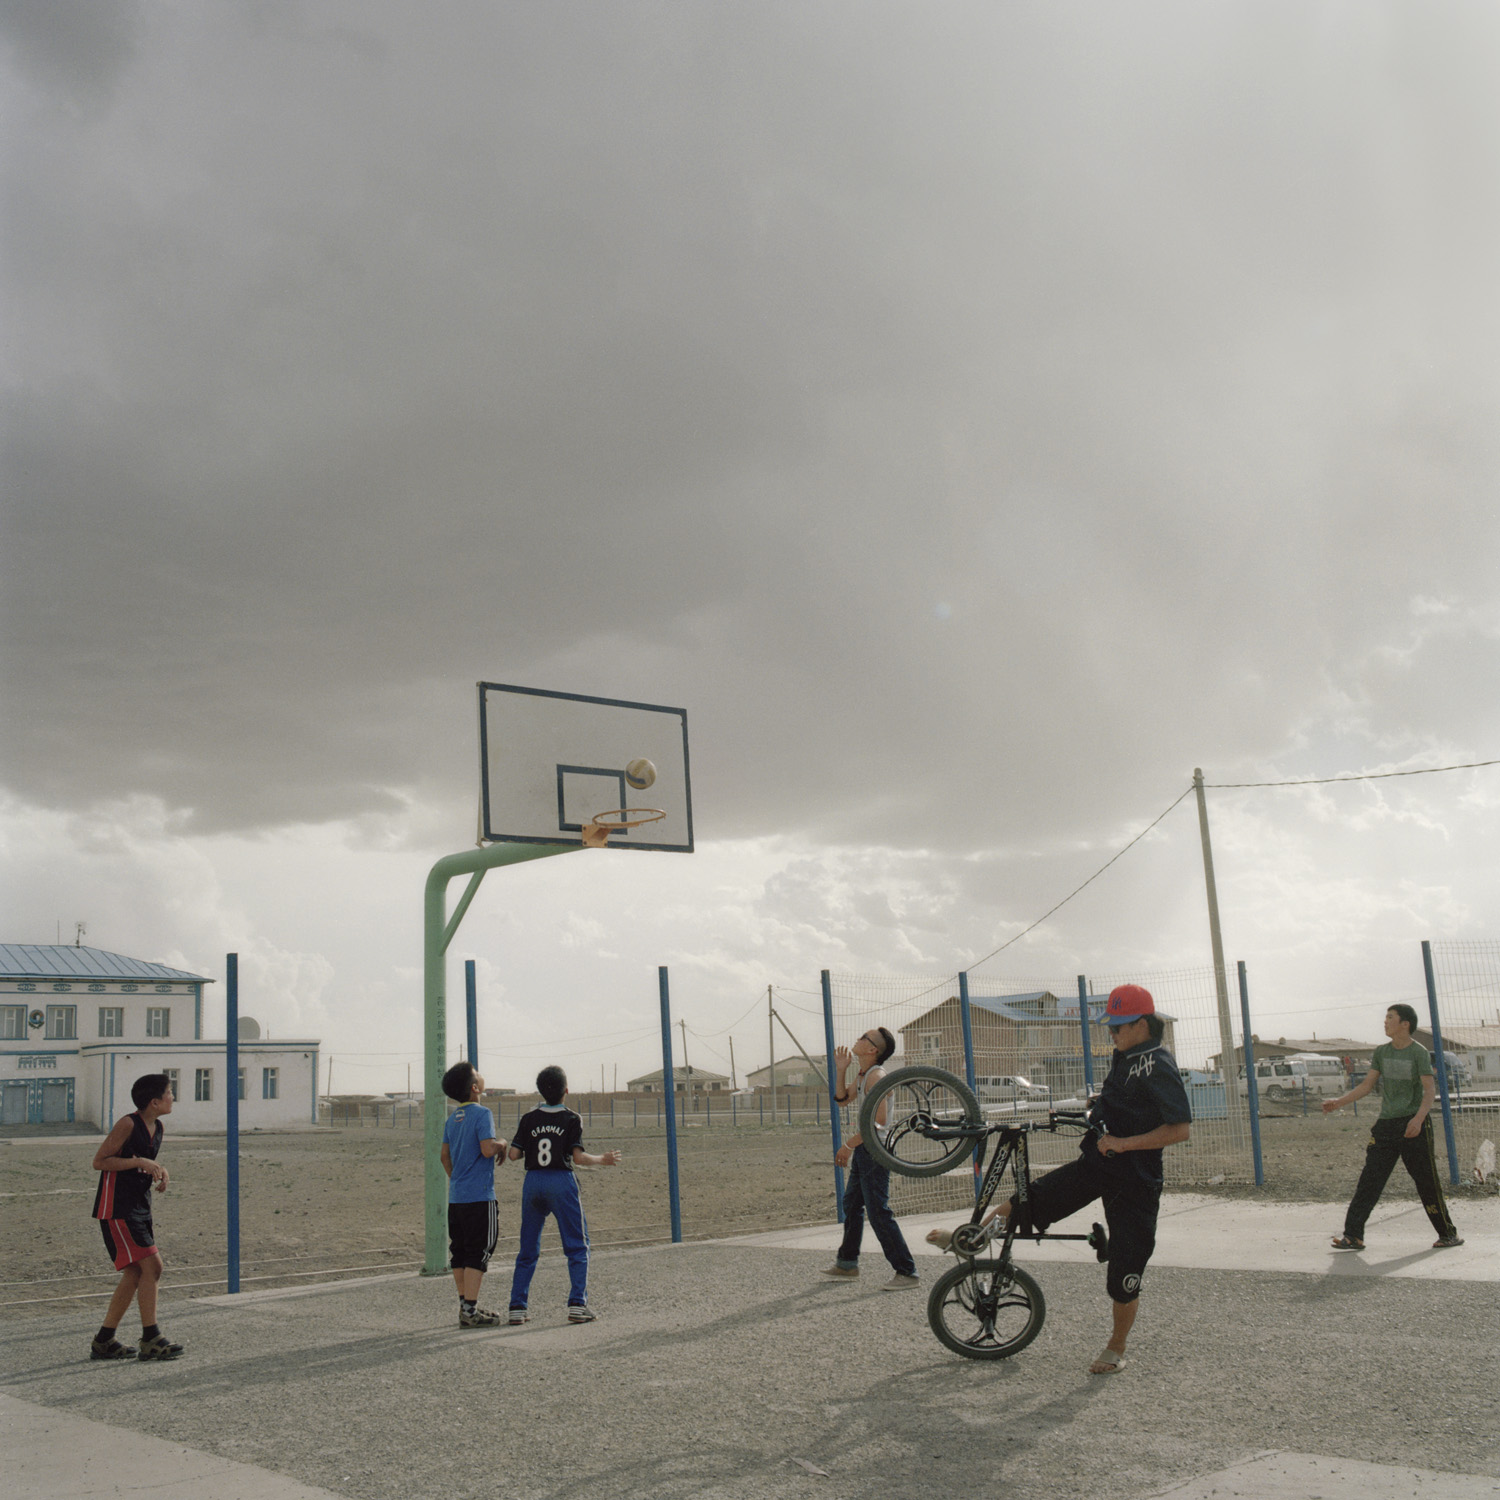 Young boys play in the only public place in the village -- the basketball field of the public school. Mongolia, Gobi, Tsogttsestii sum, 2012.